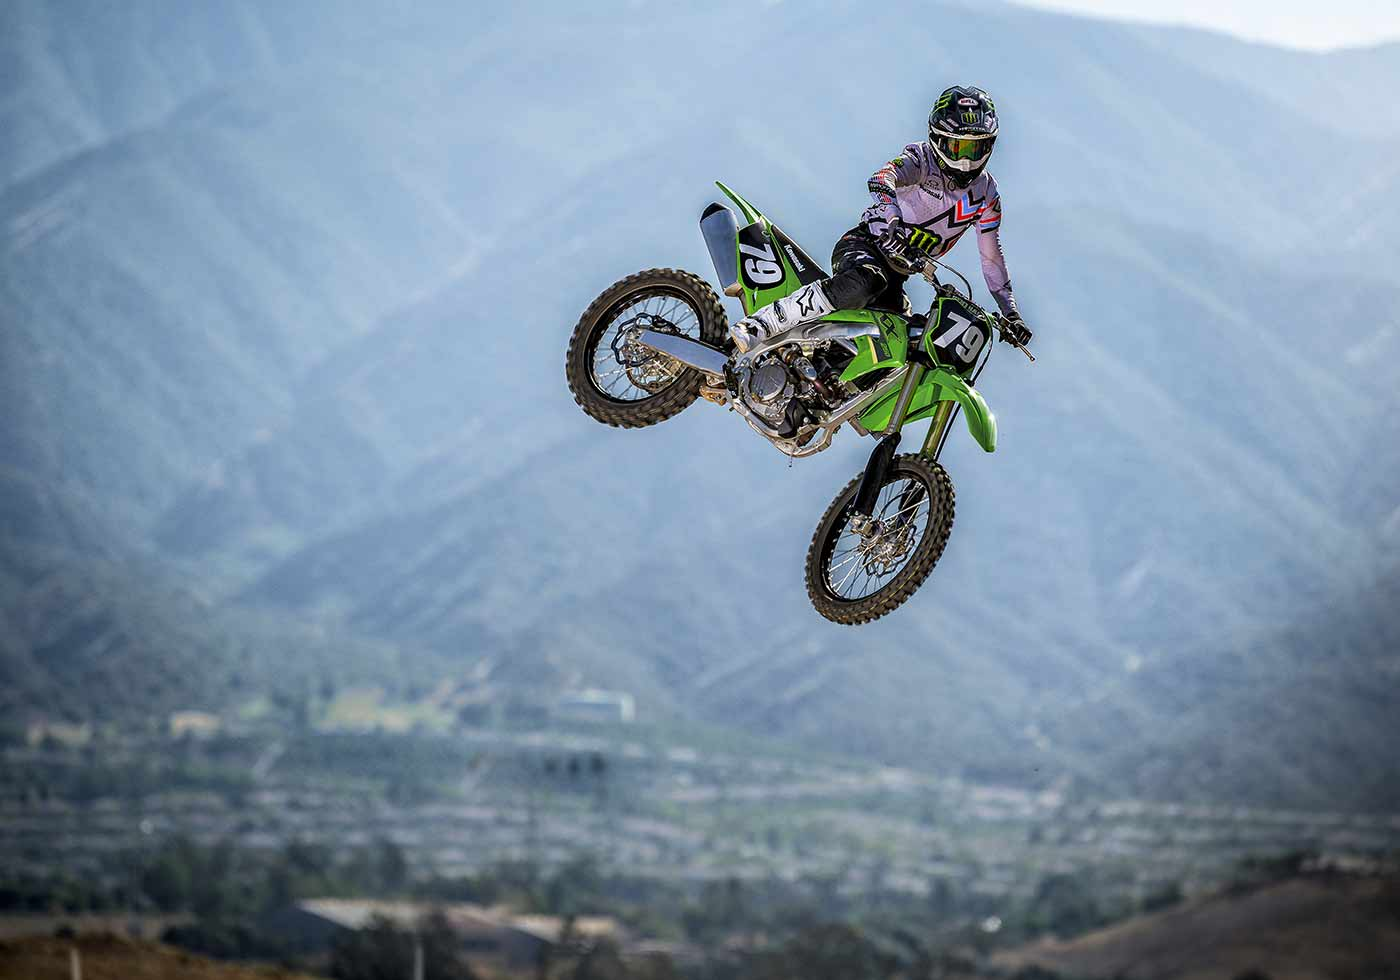 Kawasaki has launched the new 2022 KX250 and KX450 off-road/dirt motorcycles in the Indian market.